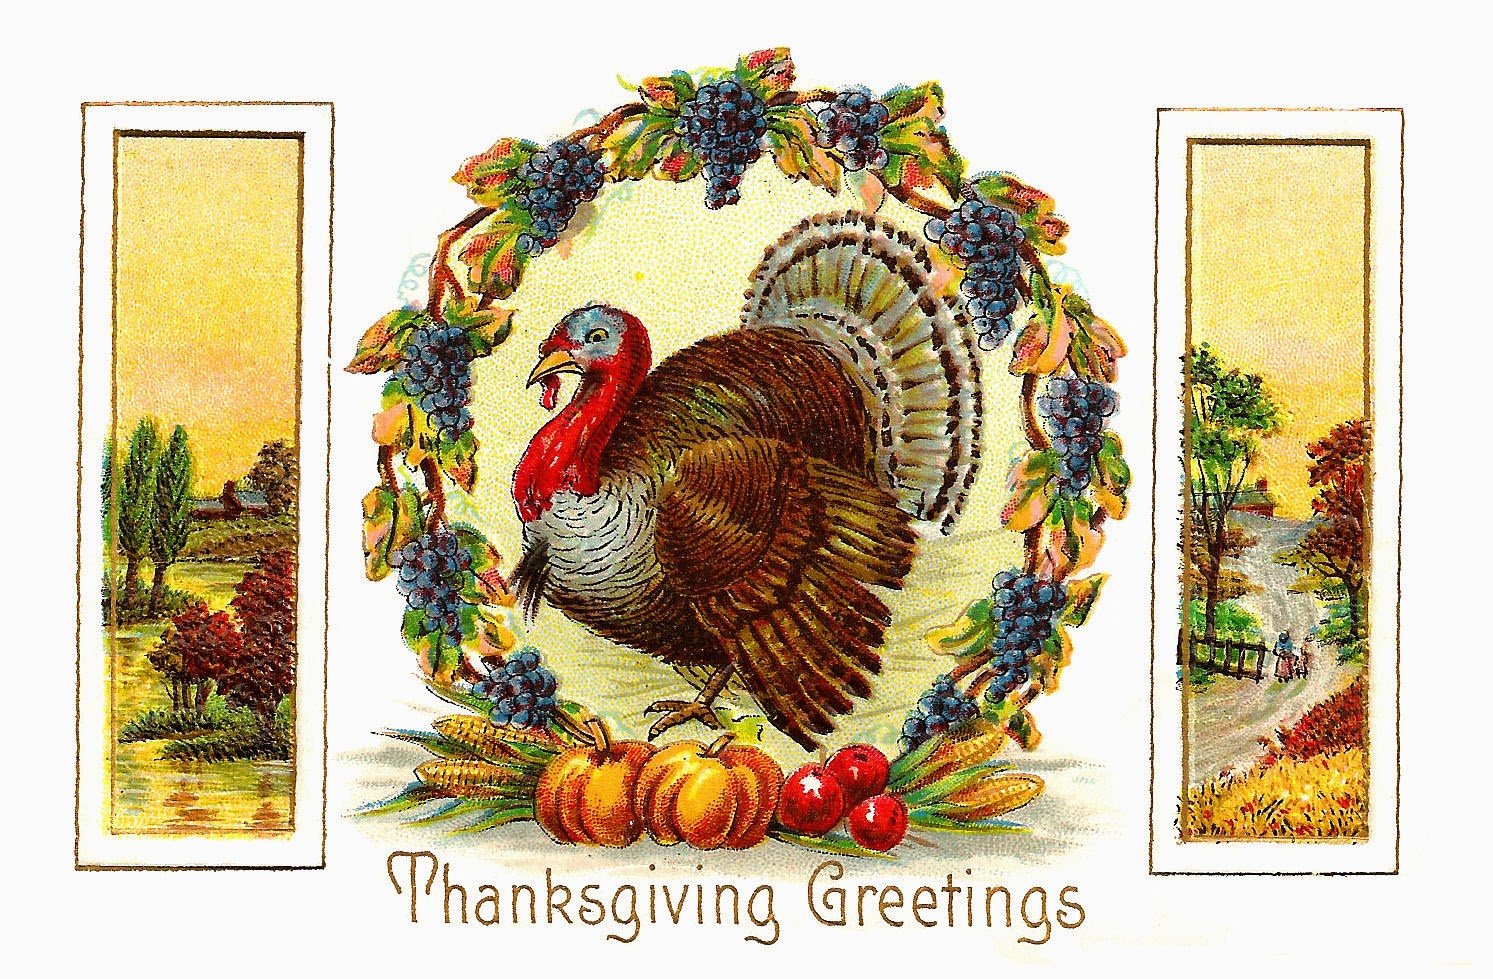 Thanksgiving Greetings with Turkey